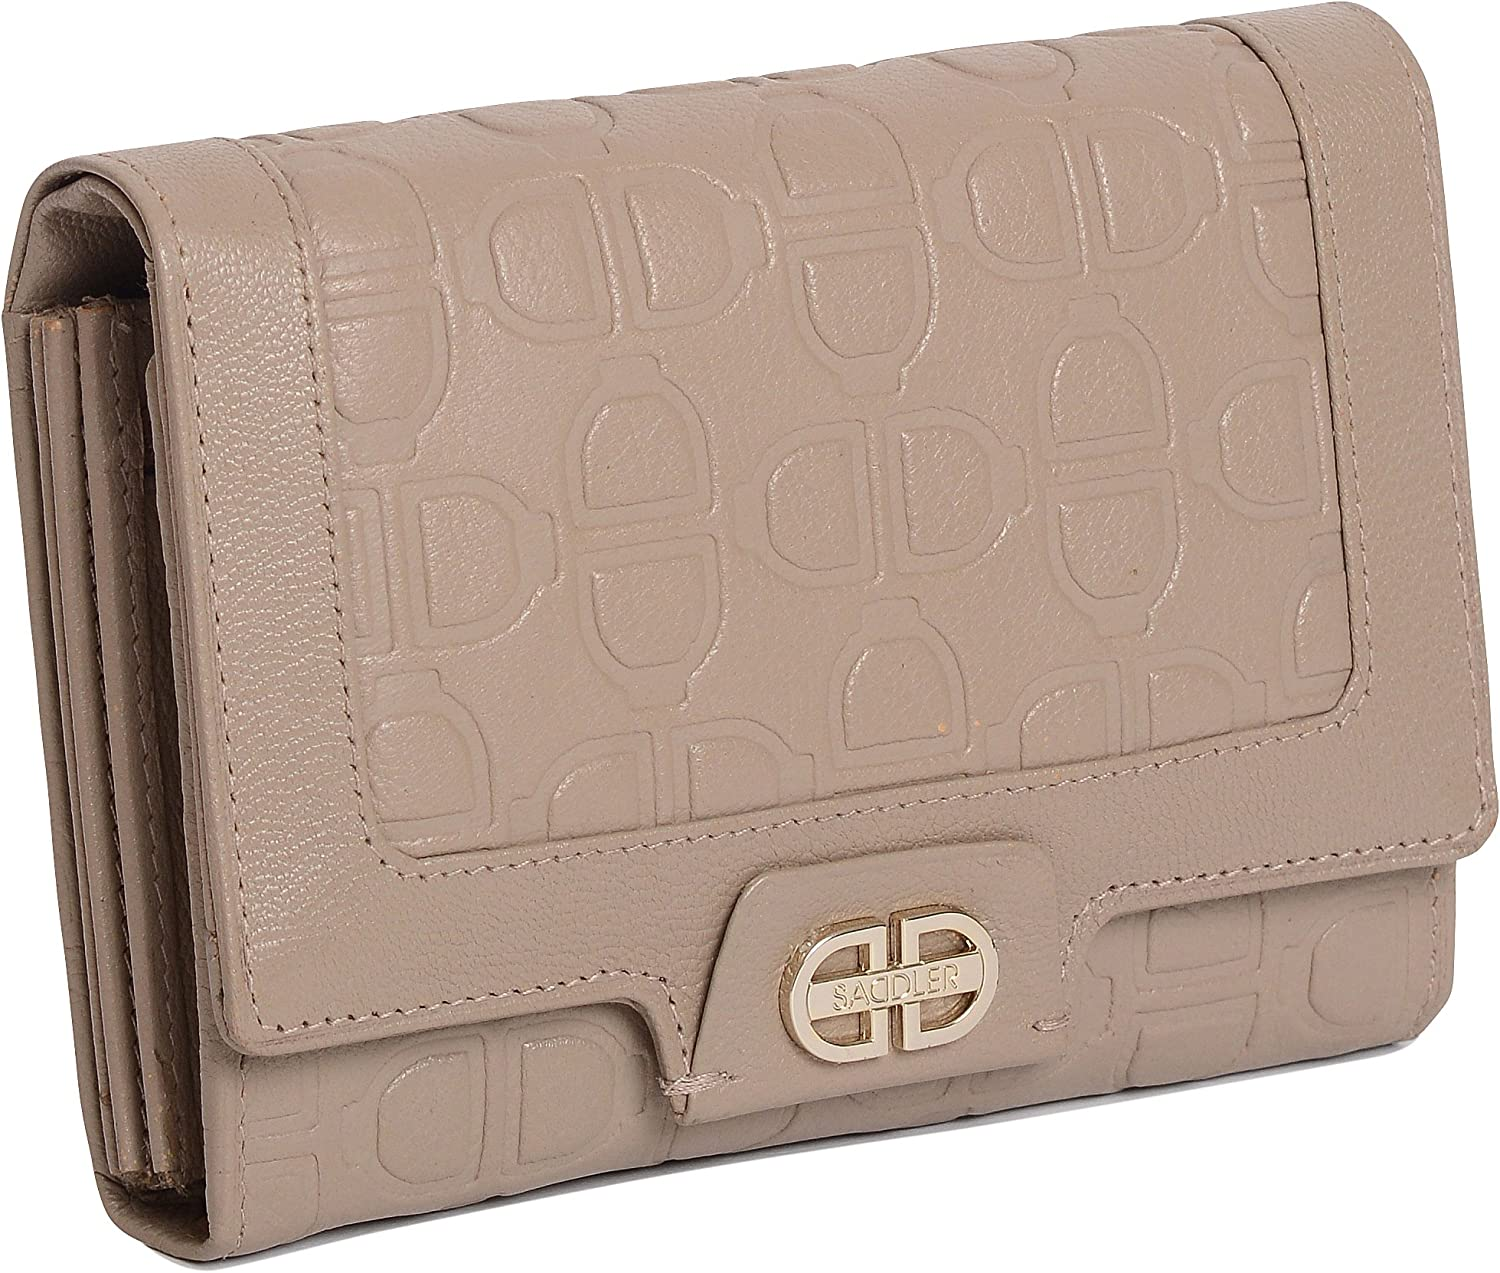 SADDLER Womens Medium Leather Credit Purse with Coin Fashionable Product Wallet Card